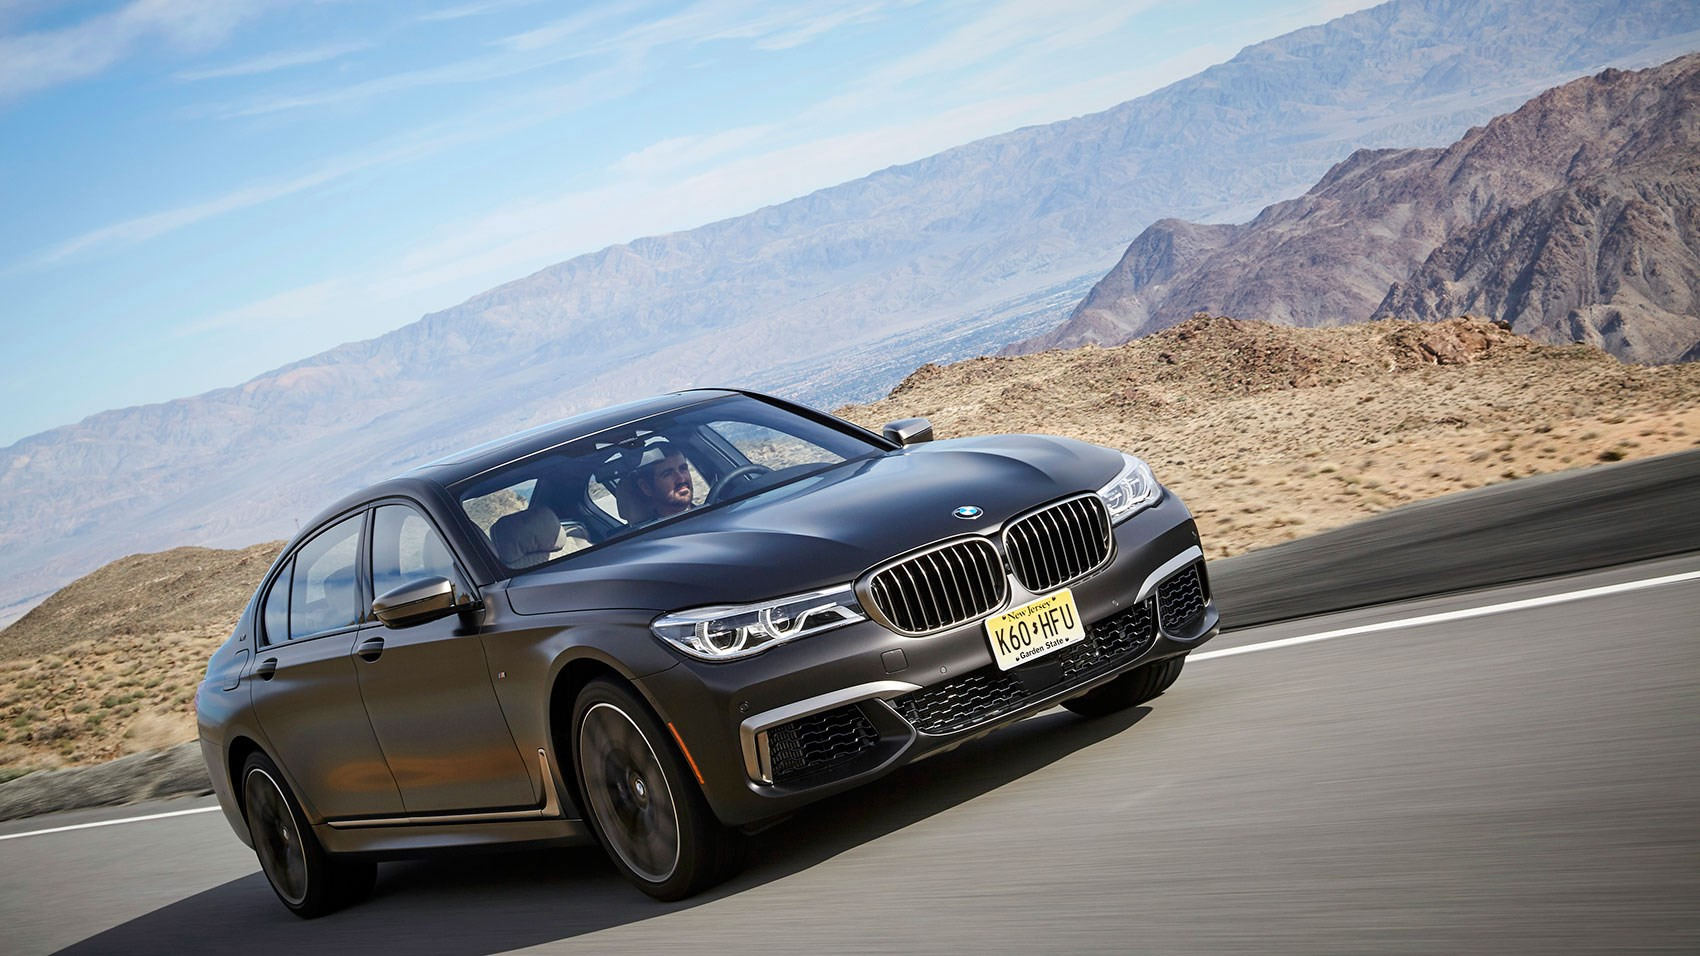 The Latest In A Long Line Of V12 BMW 7 Series